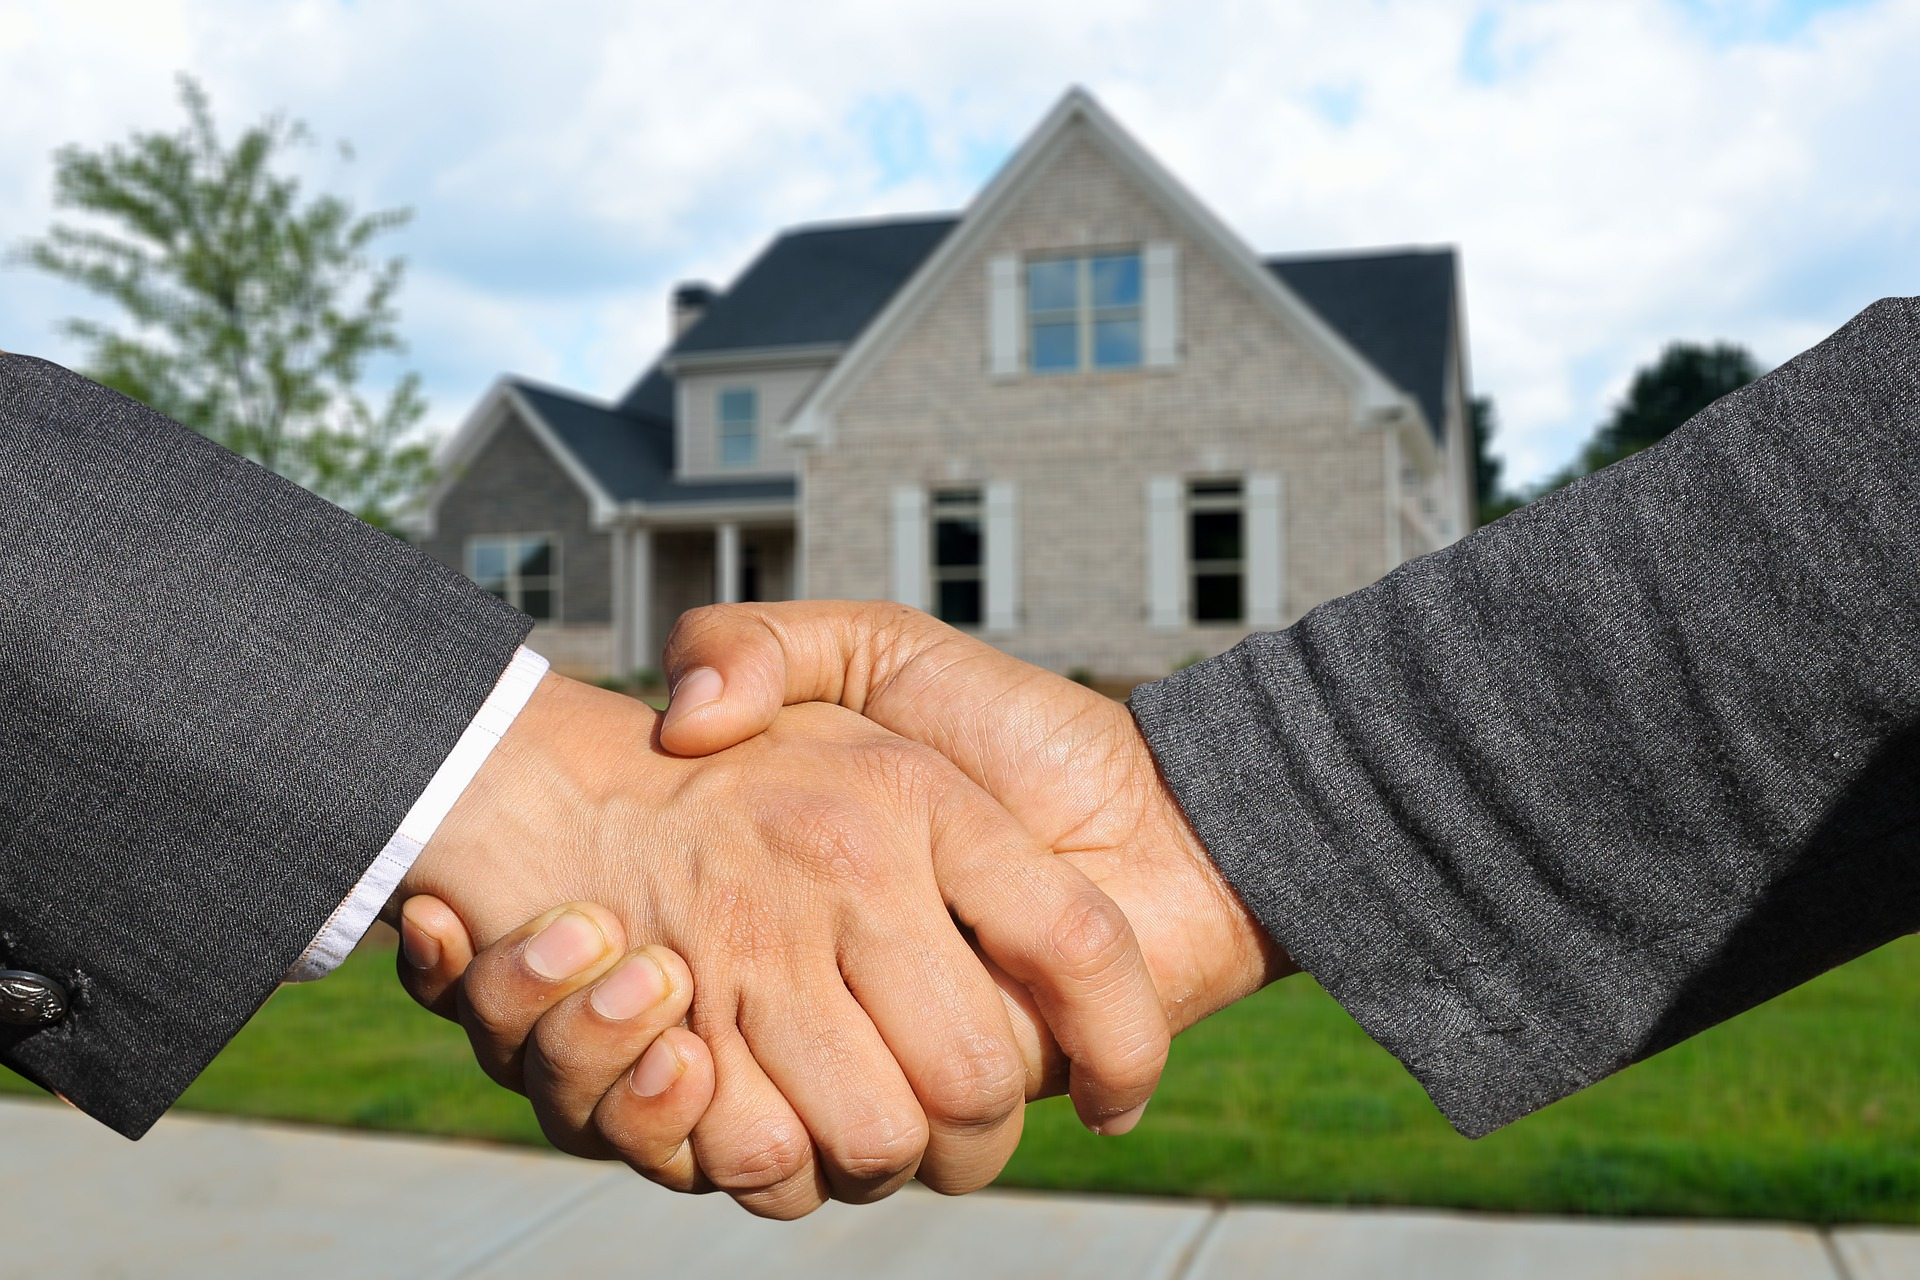 Do you really need a real estate agent to sell your home?